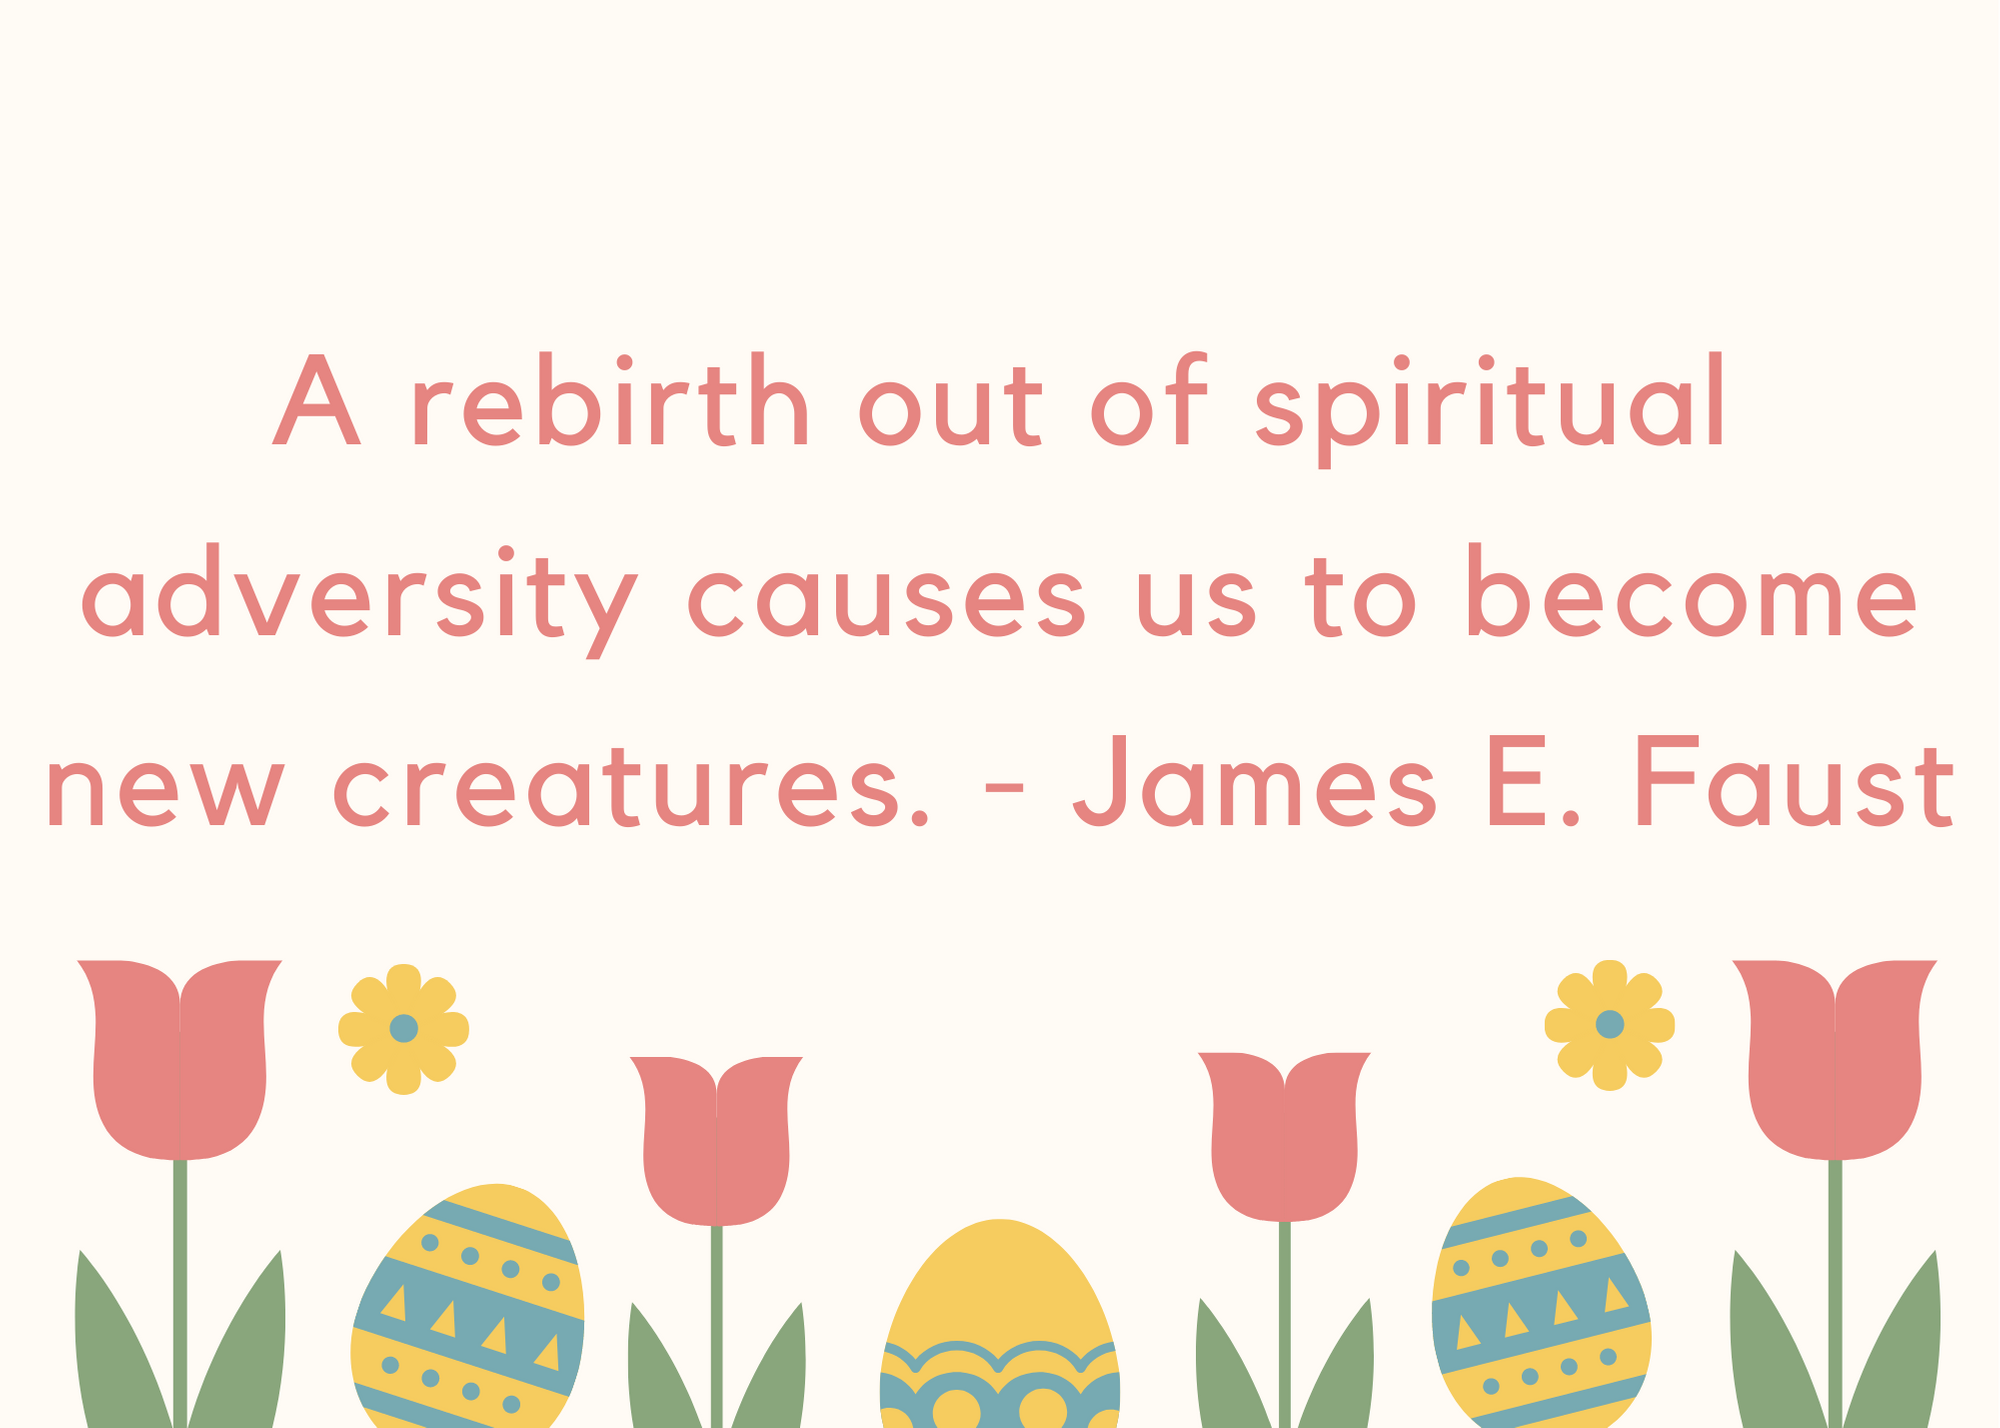 A rebirth out of spiritual adversity causes us to become new creatures. - James E. Faust